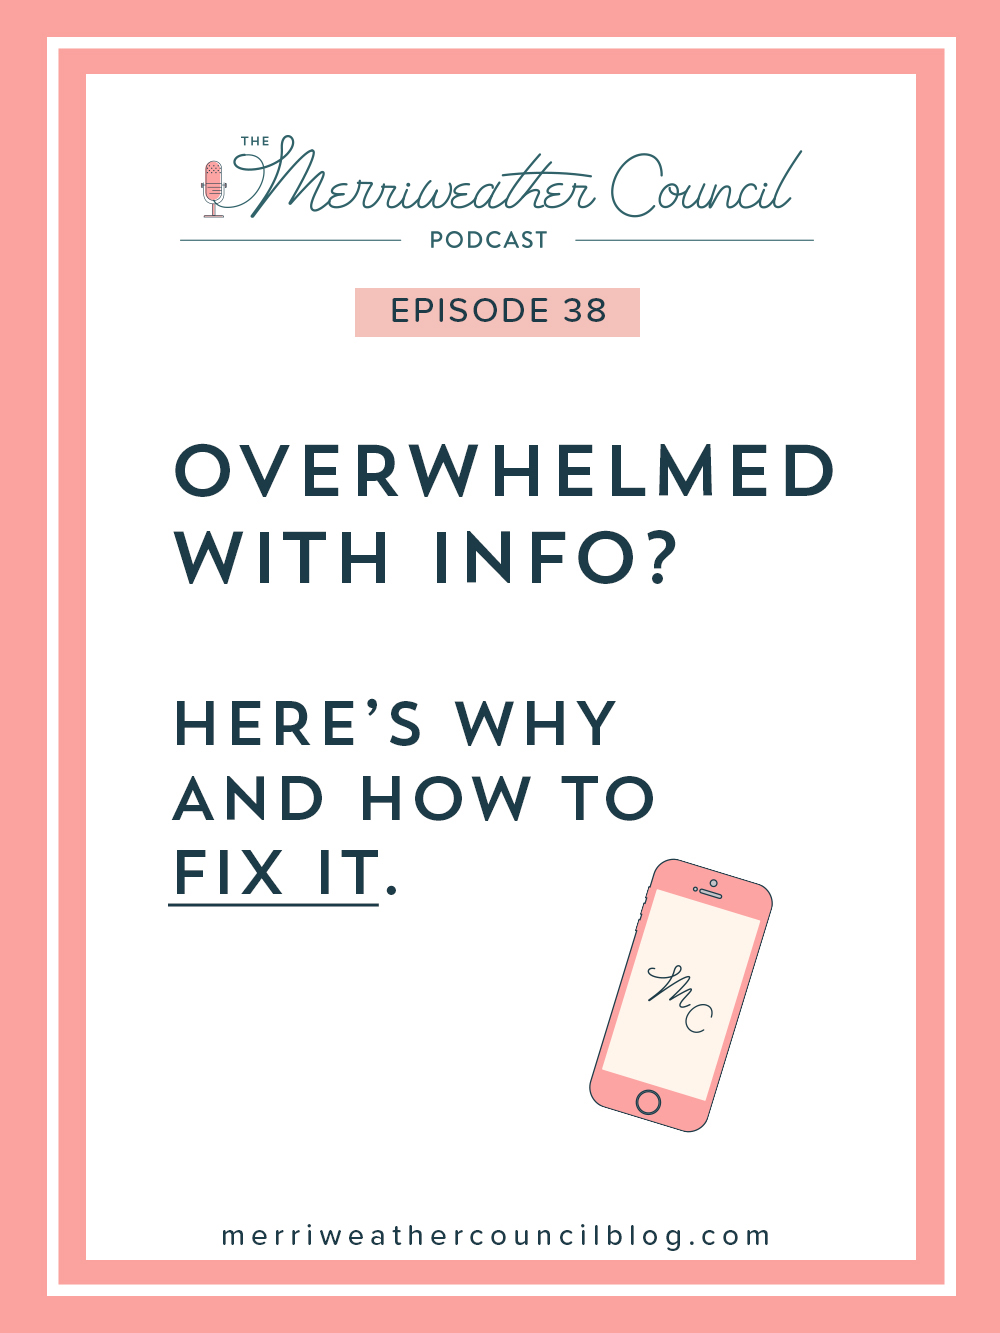 Episode 38: Overwhelmed with info? Here's Why and How to Fix it | The Merriweather Council Podcast